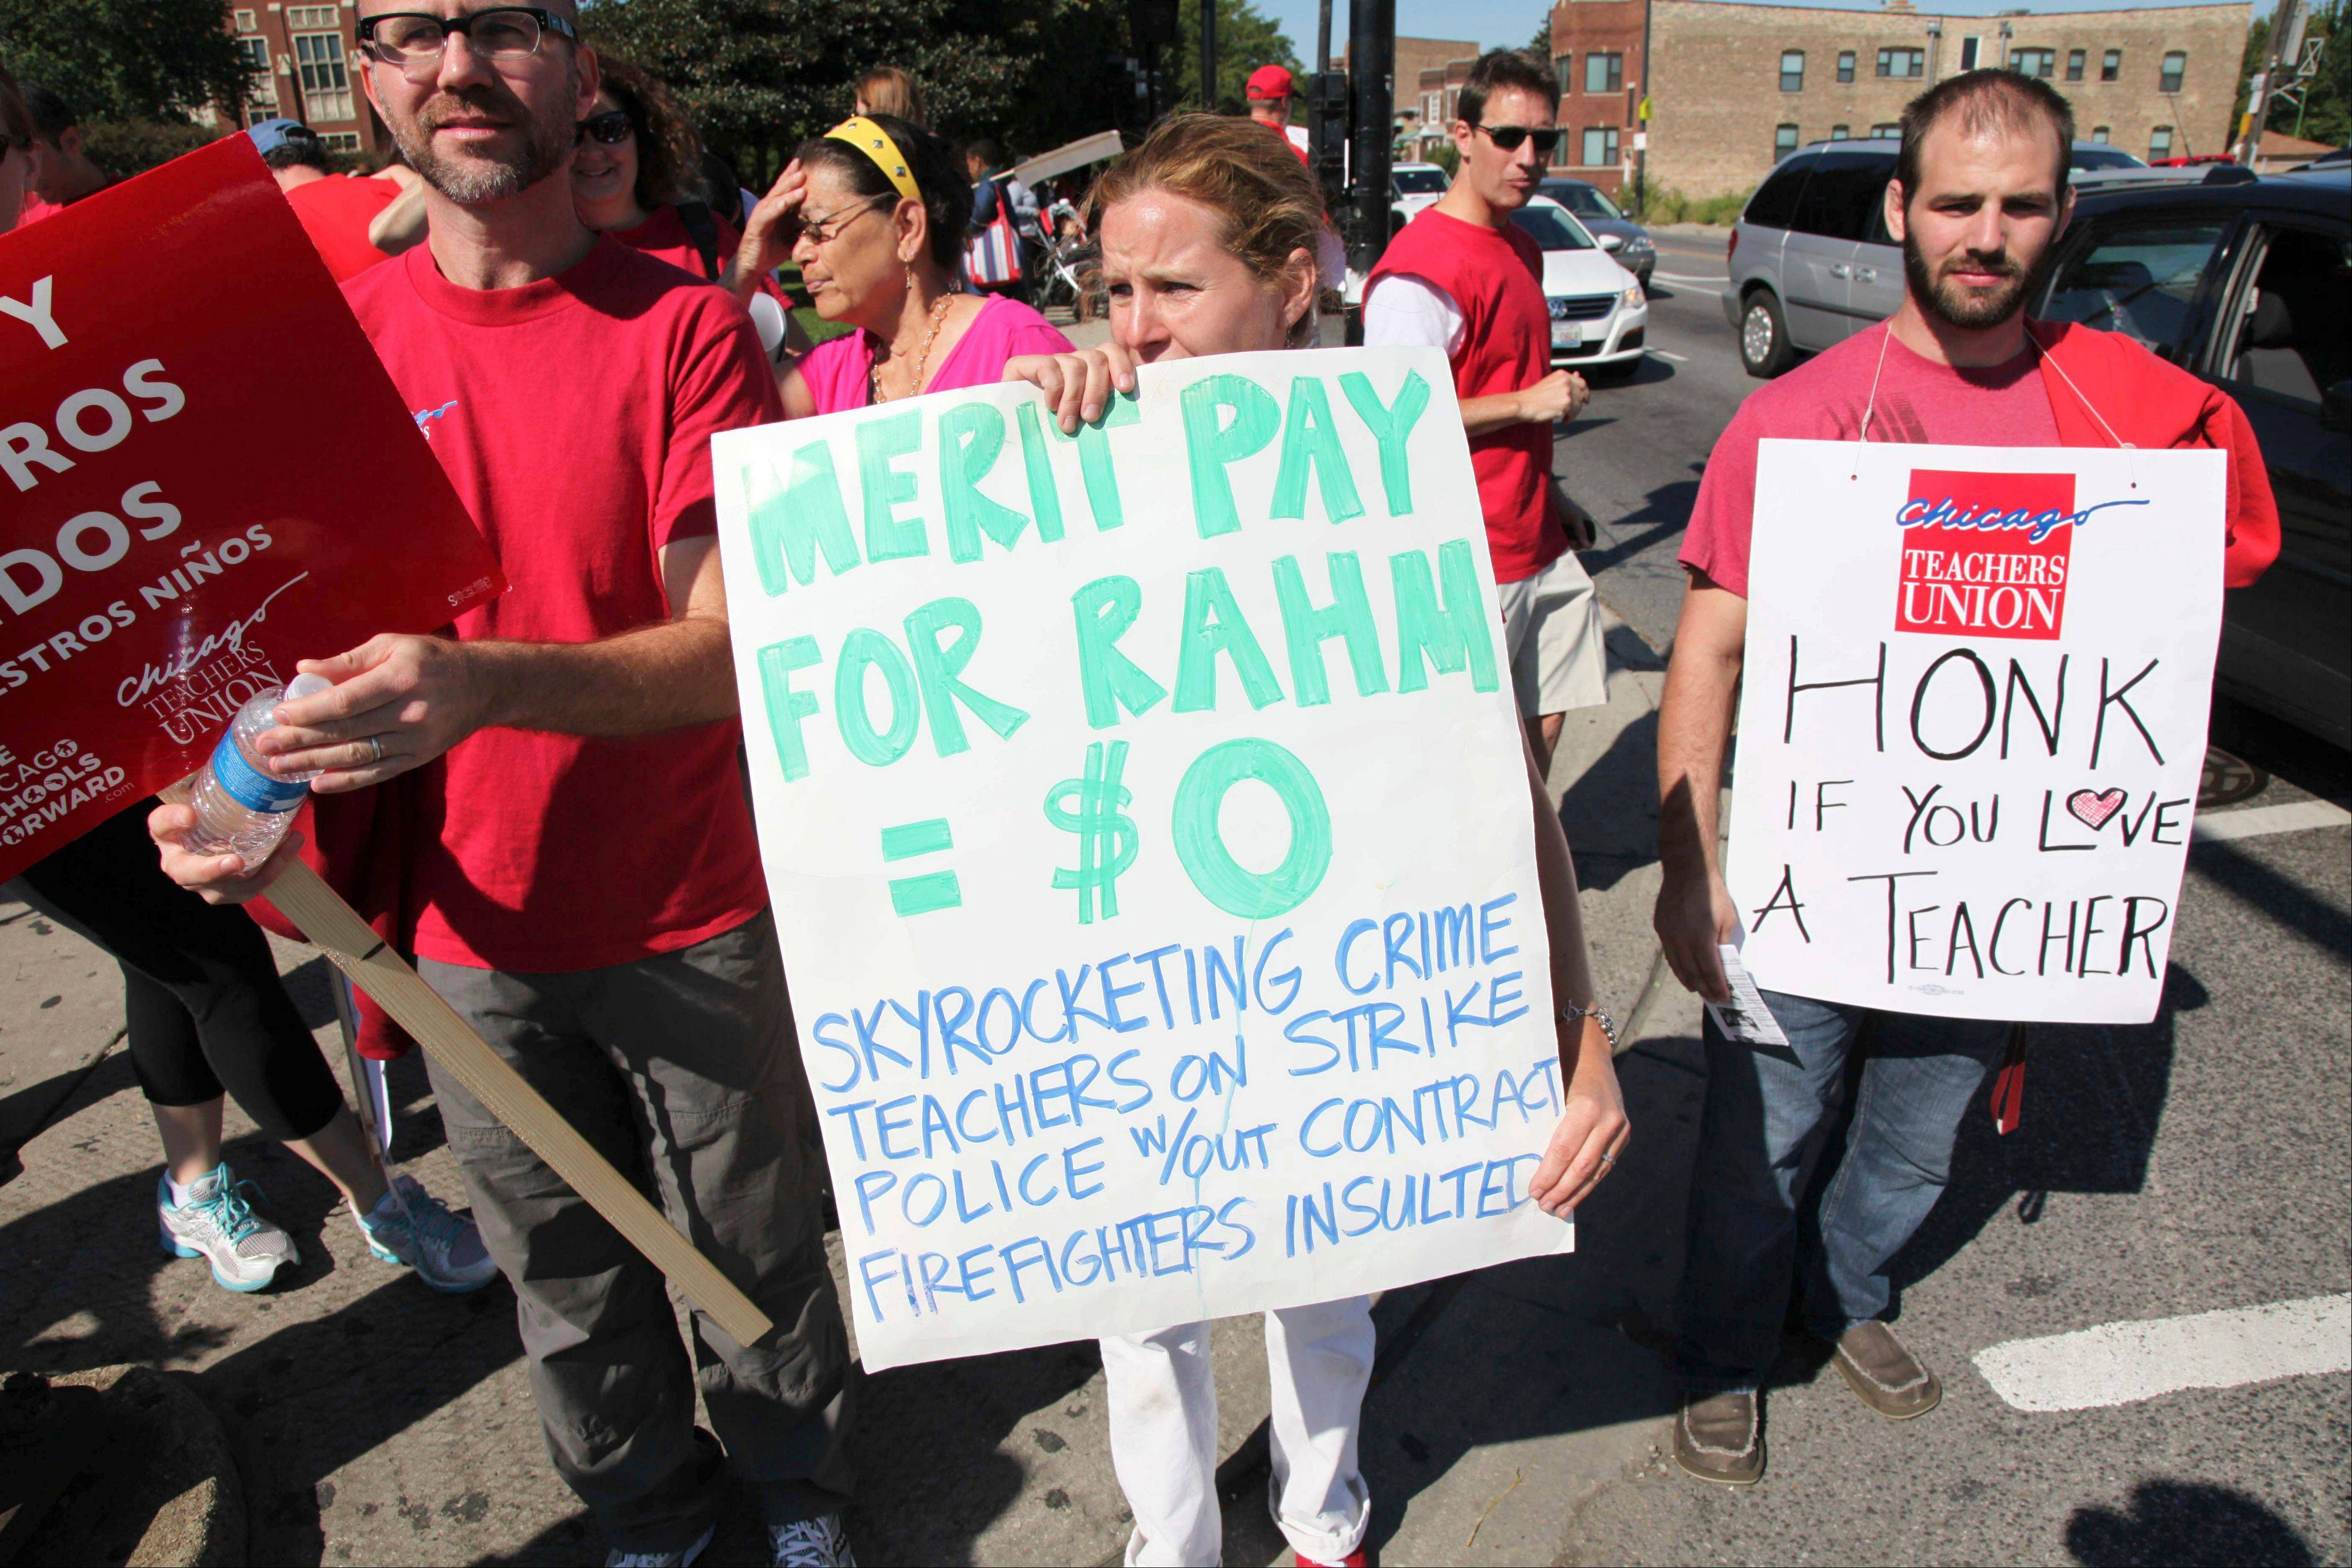 Chicago public school teachers walk a picket line outside Lane Tech High School on Tuesday, the second day of a strike.